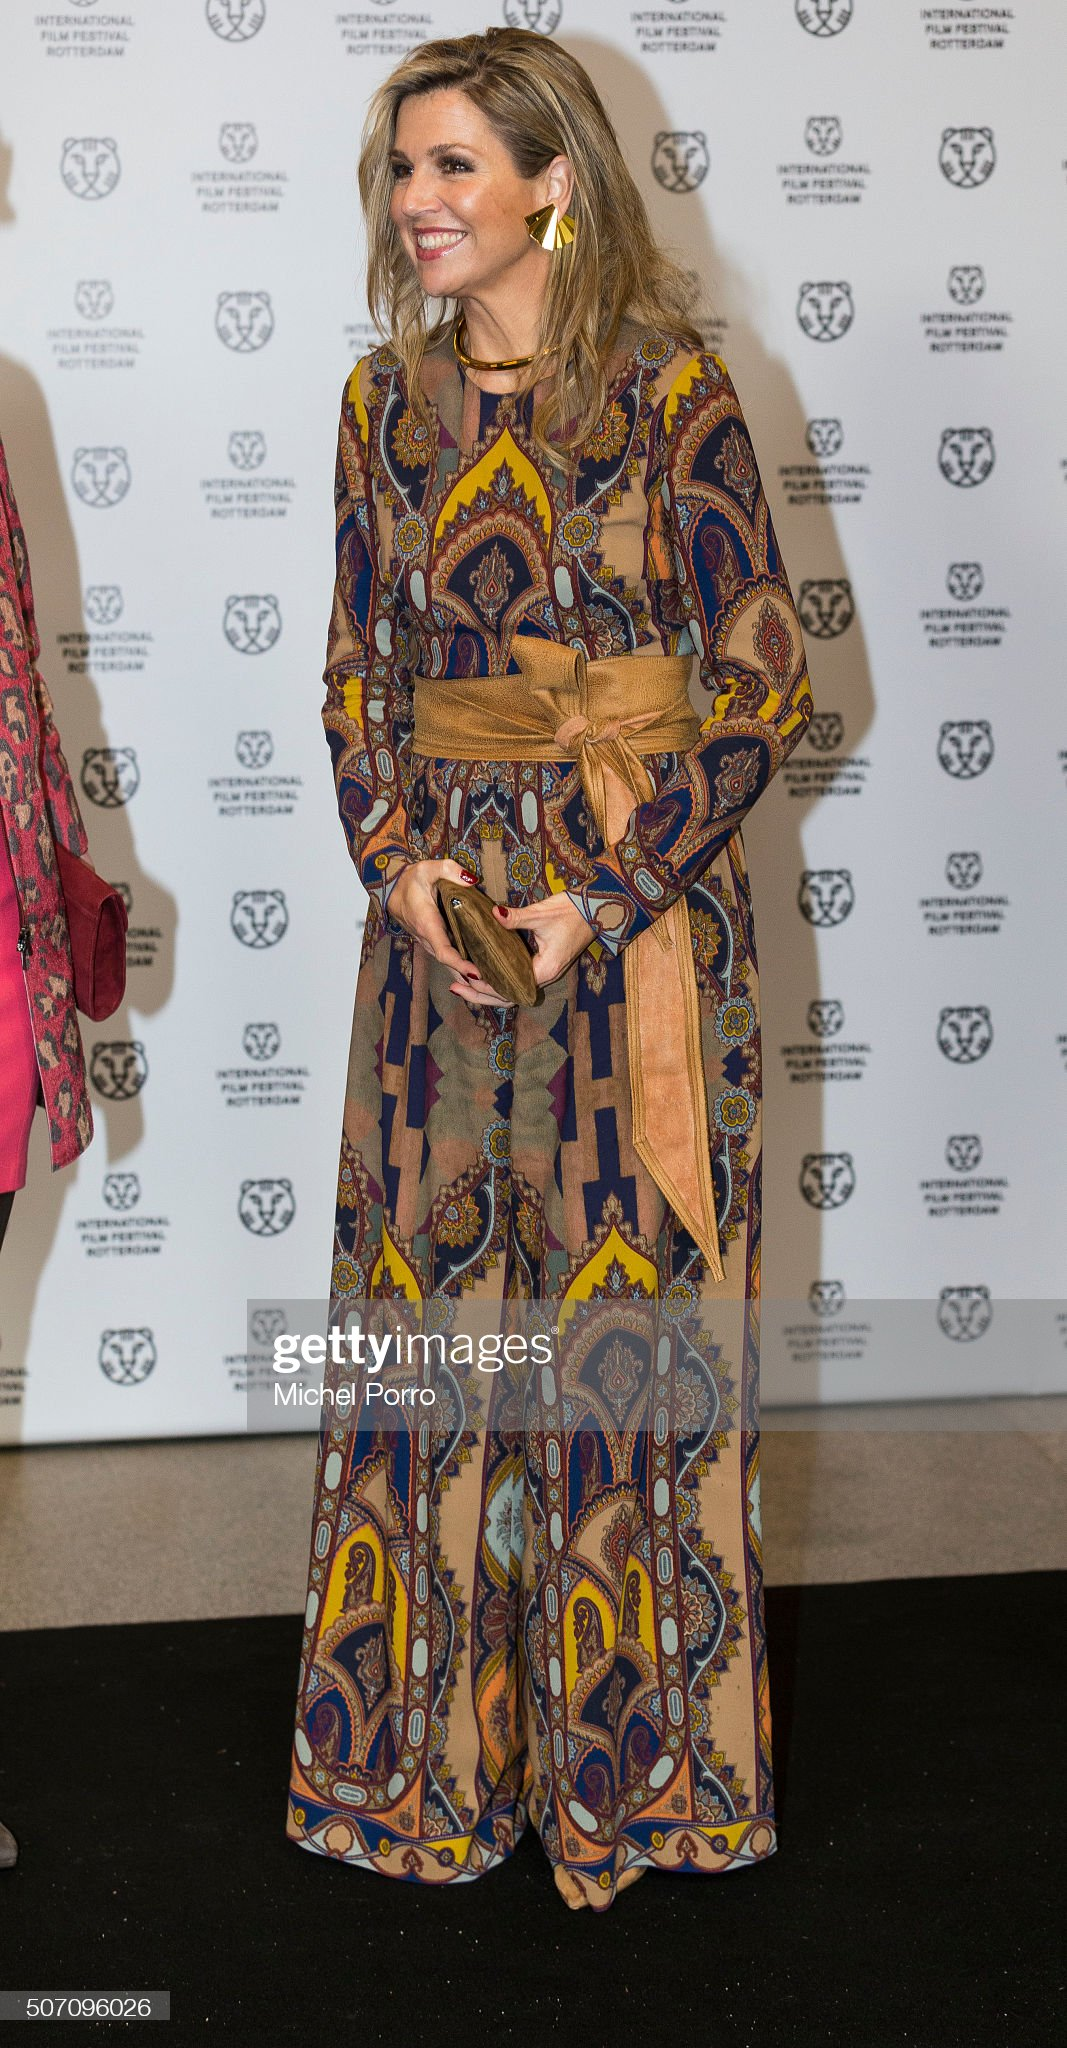 Queen Maxima Of The Netherlands Attends Opening Rotterdam International Film Festival : News Photo